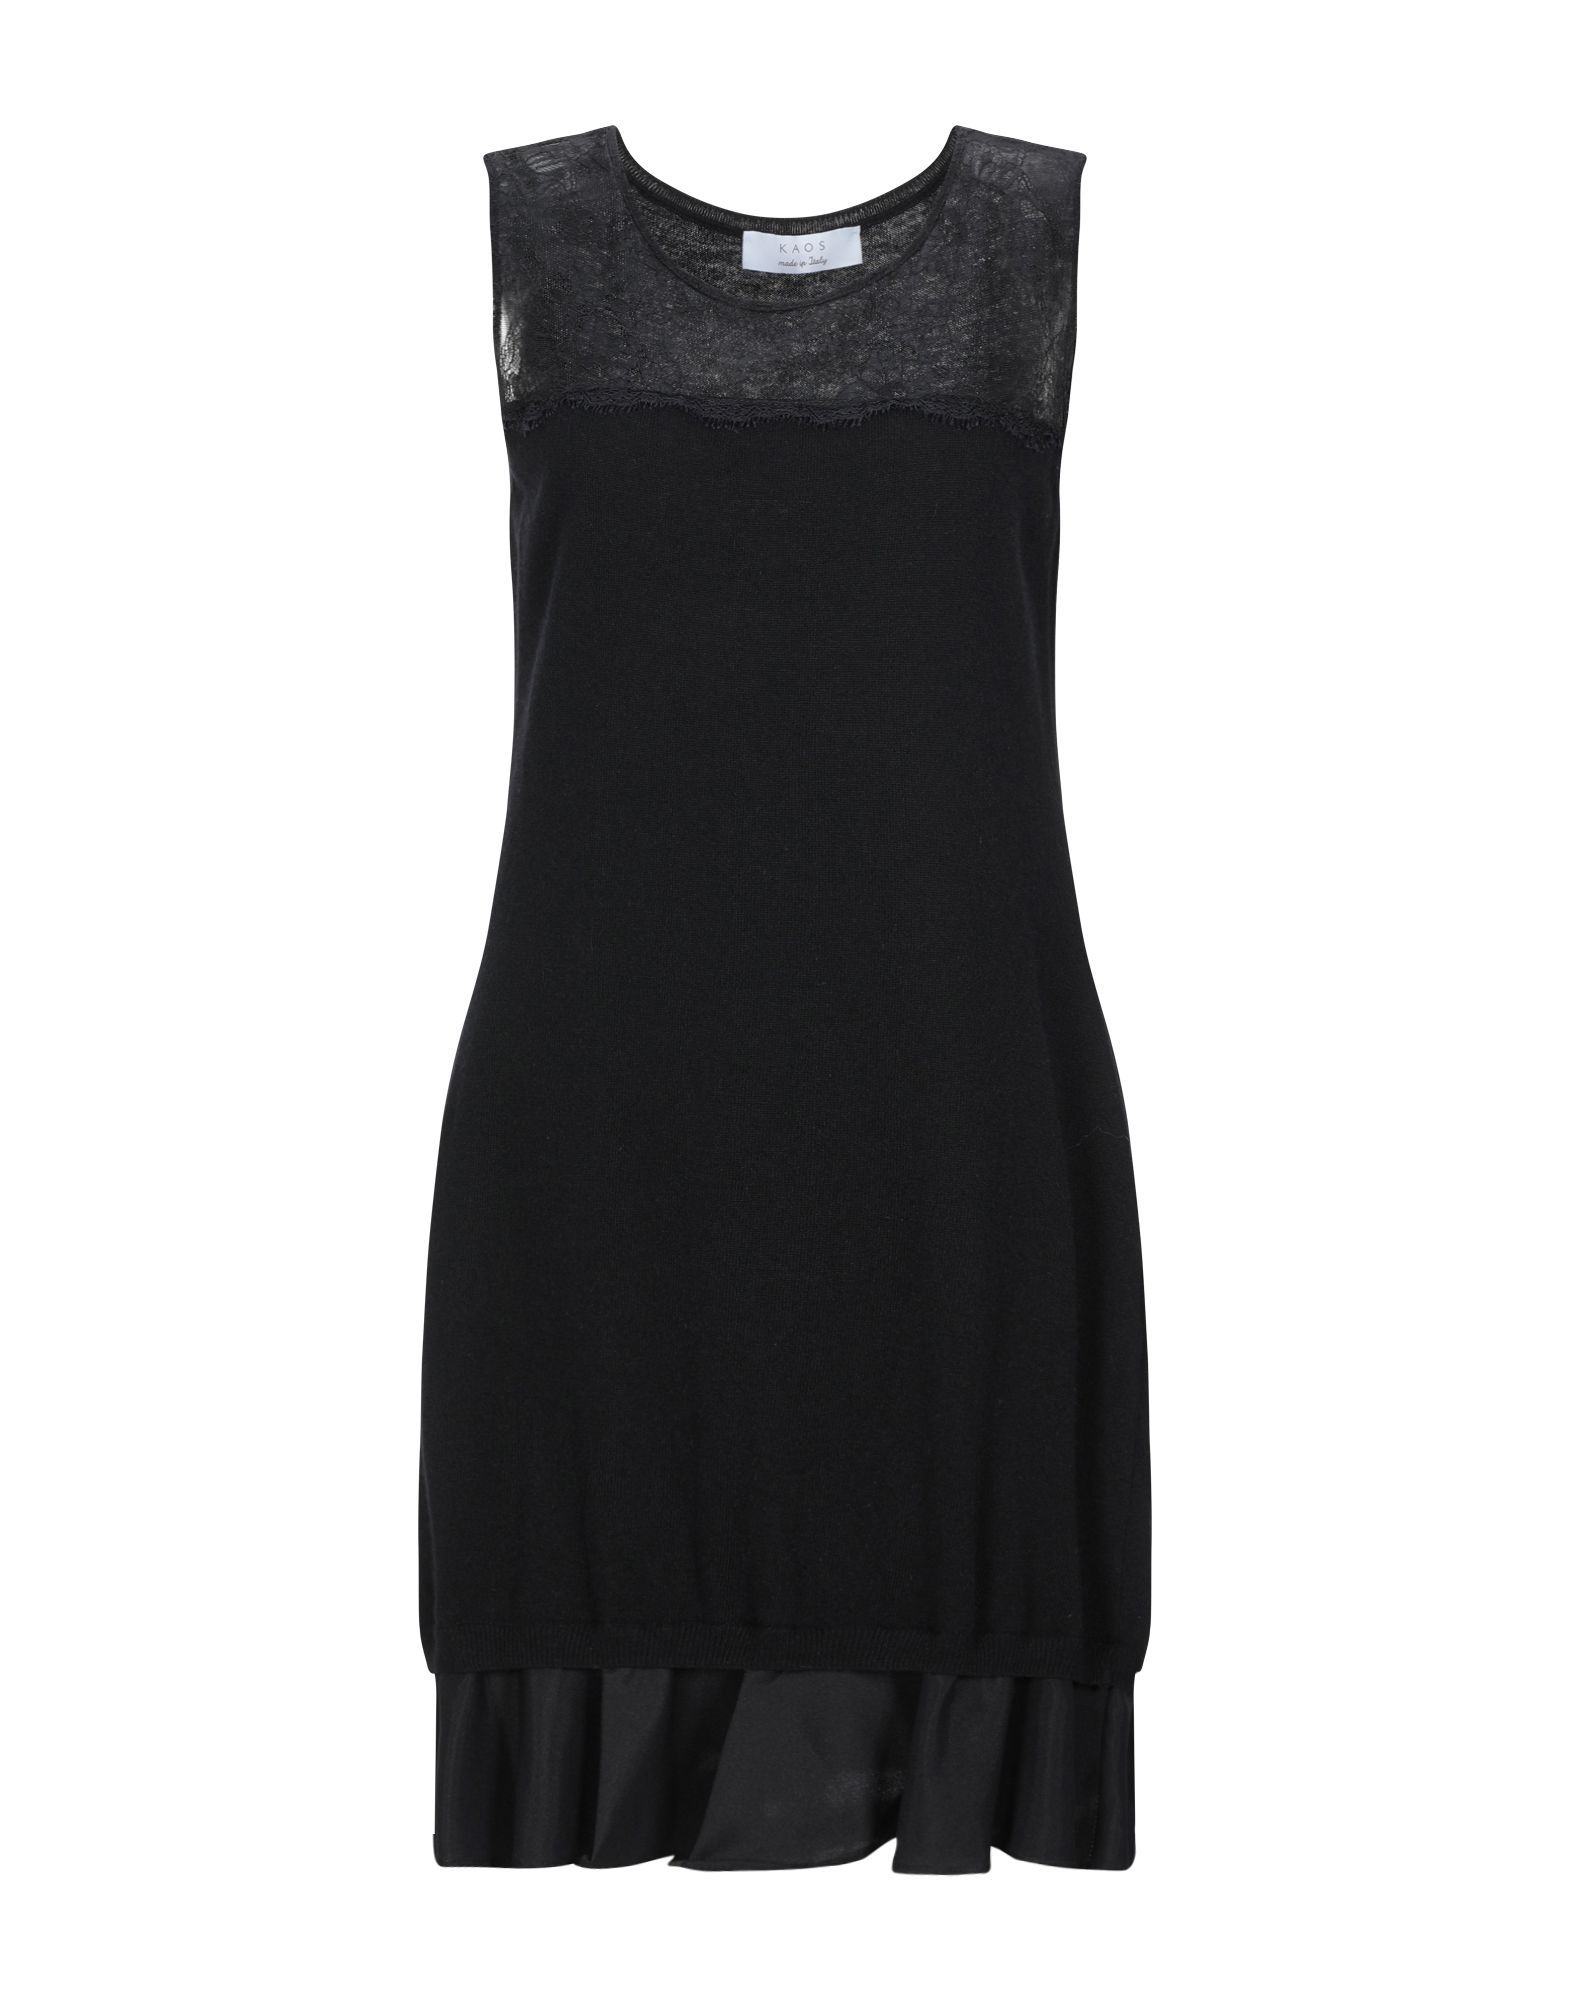 DRESSES Kaos Black Woman Viscose